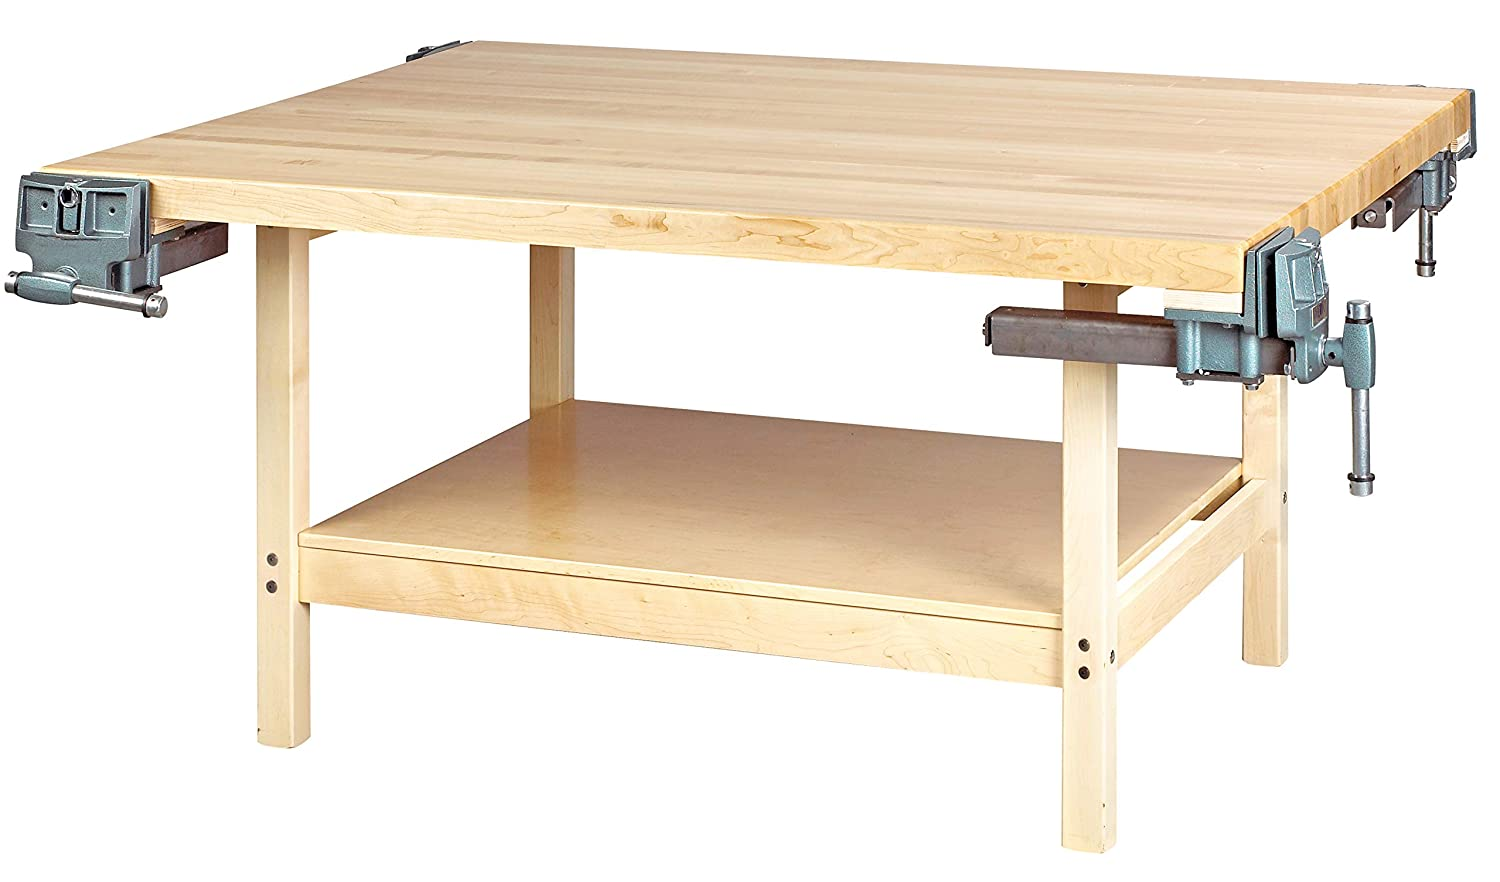 Diversified Woodcrafts WW4-4V Super-cheap Solid Maple Station 4 Wood Workben cheap